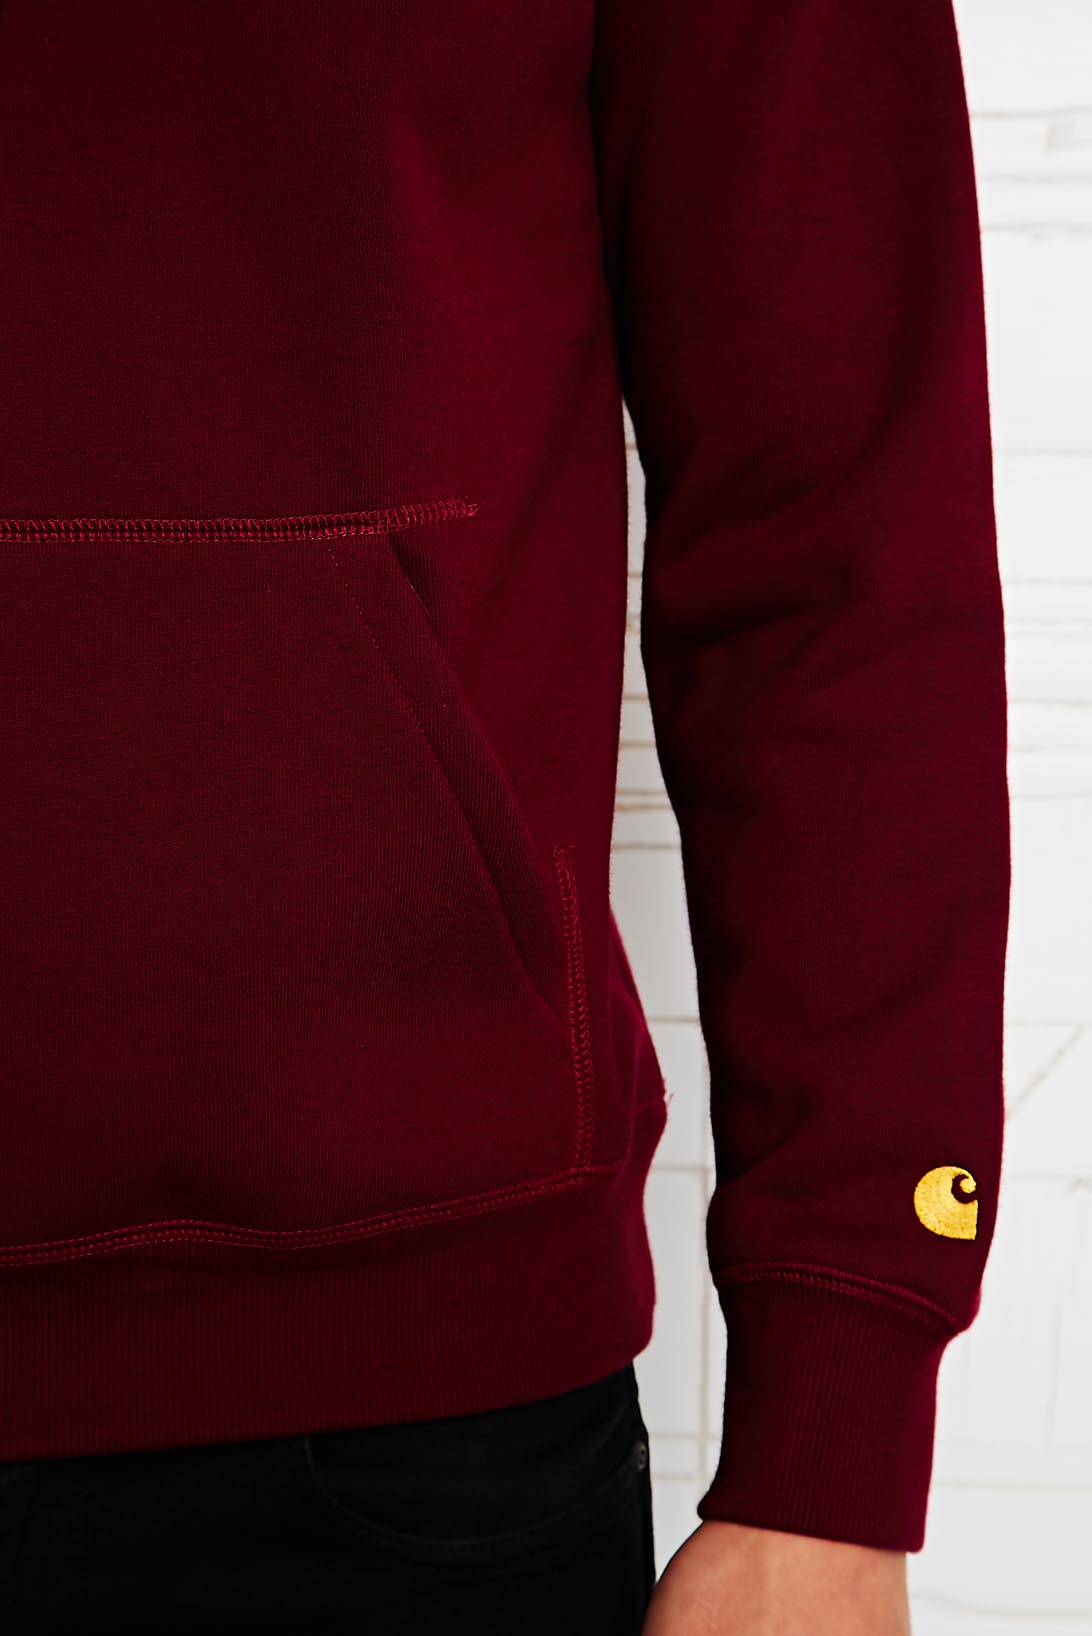 Carhartt Hooded Chase Sweatshirt in Cranberry in Plum (Red) for Men